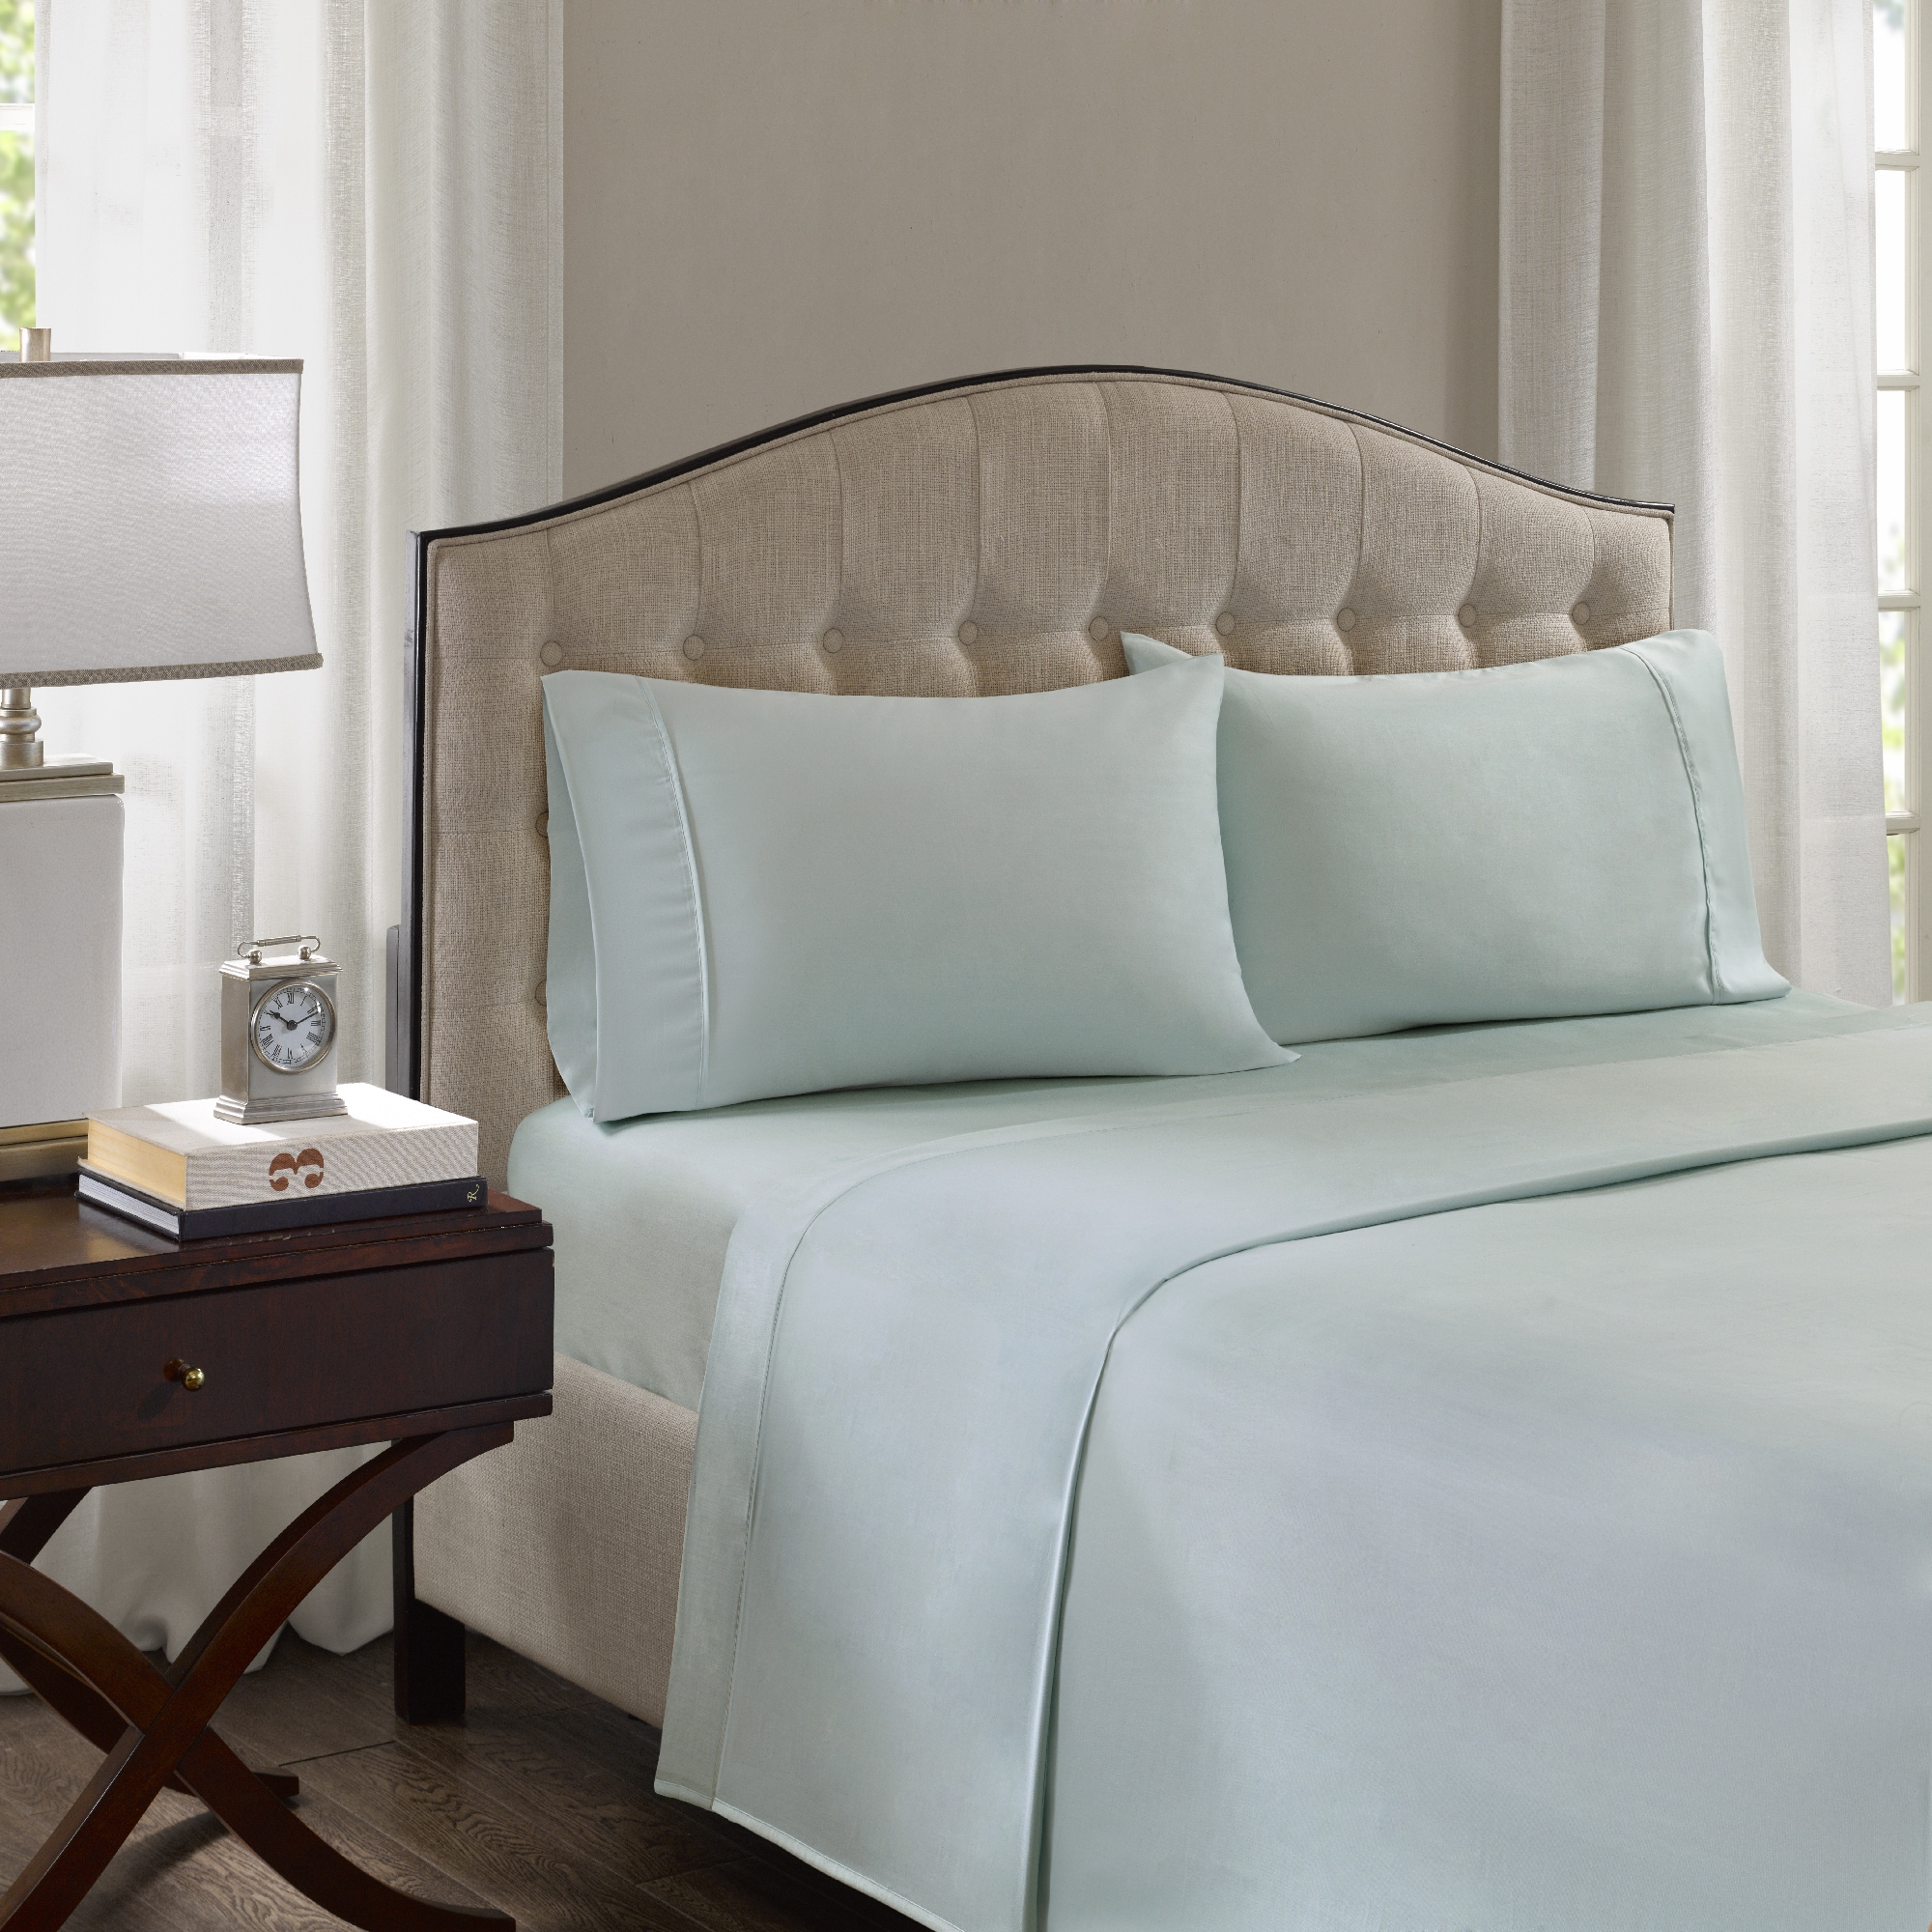 Incroyable Shop Madison Park 1500 Thread Count Luxury Cotton Rich Blend Sheet Set    Free Shipping Today   Overstock.com   17137946